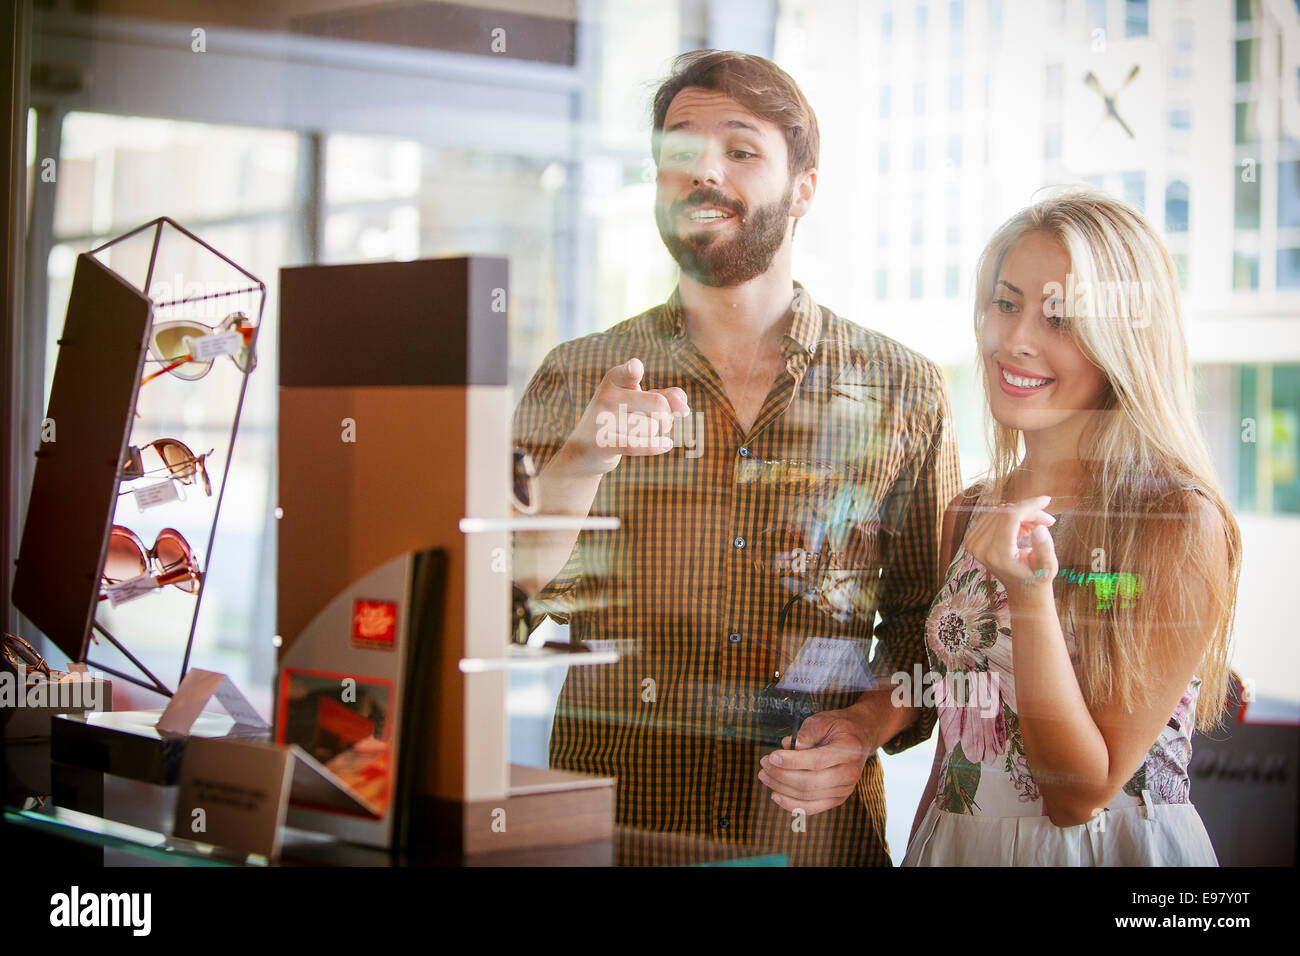 Young couple looking through shop window - Stock Image